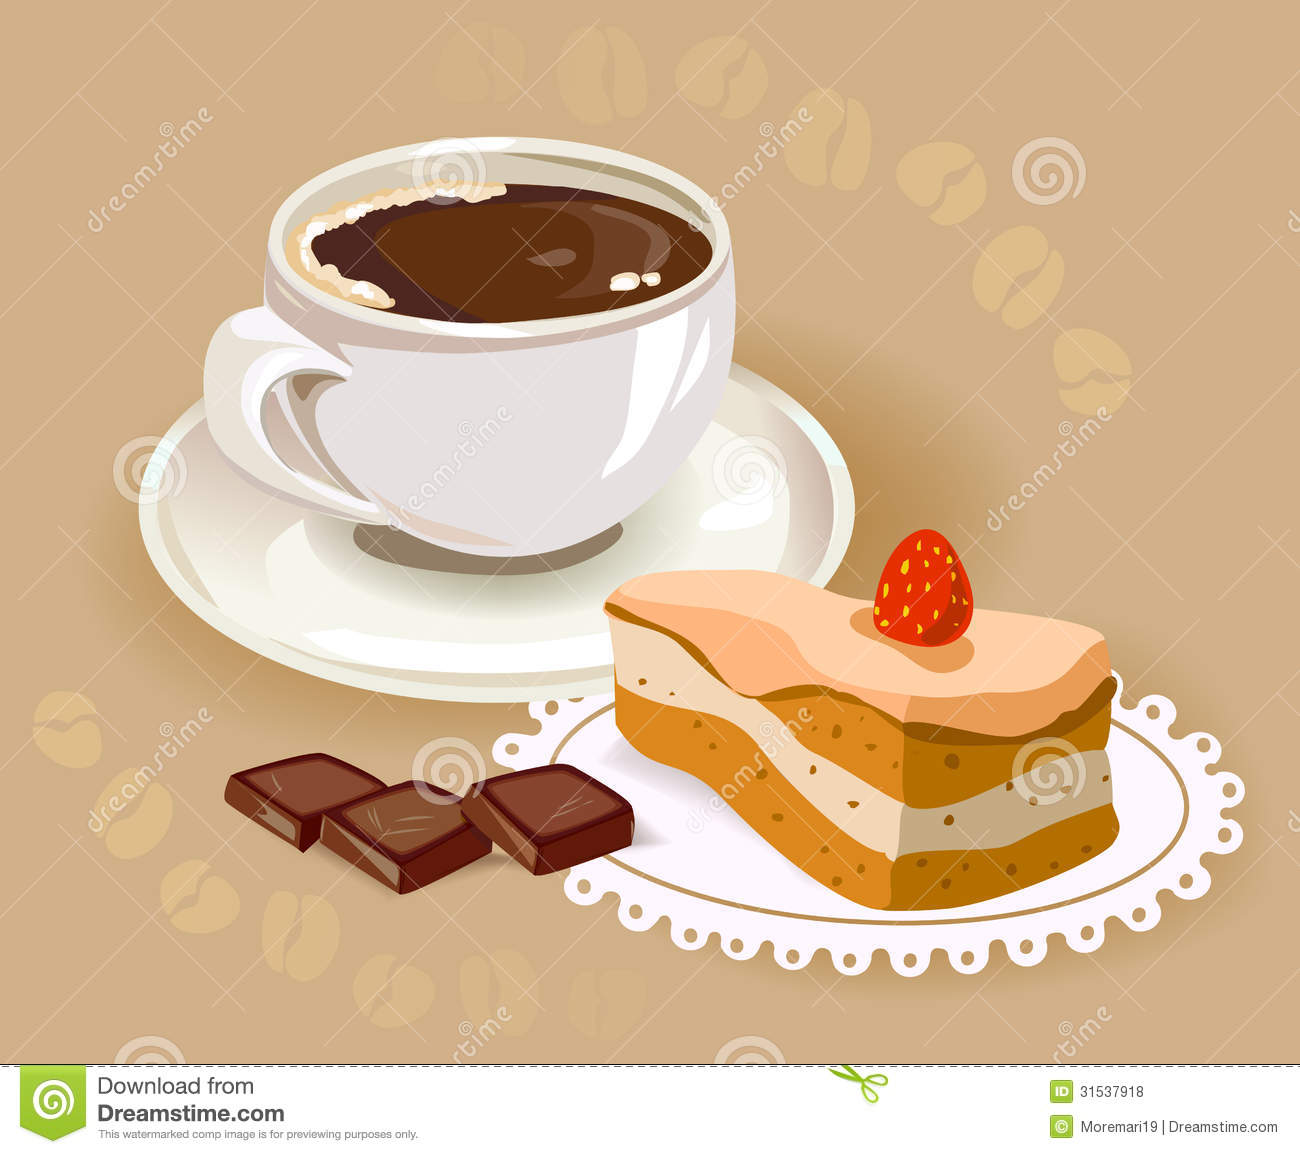 clipart coffee and cake - photo #18